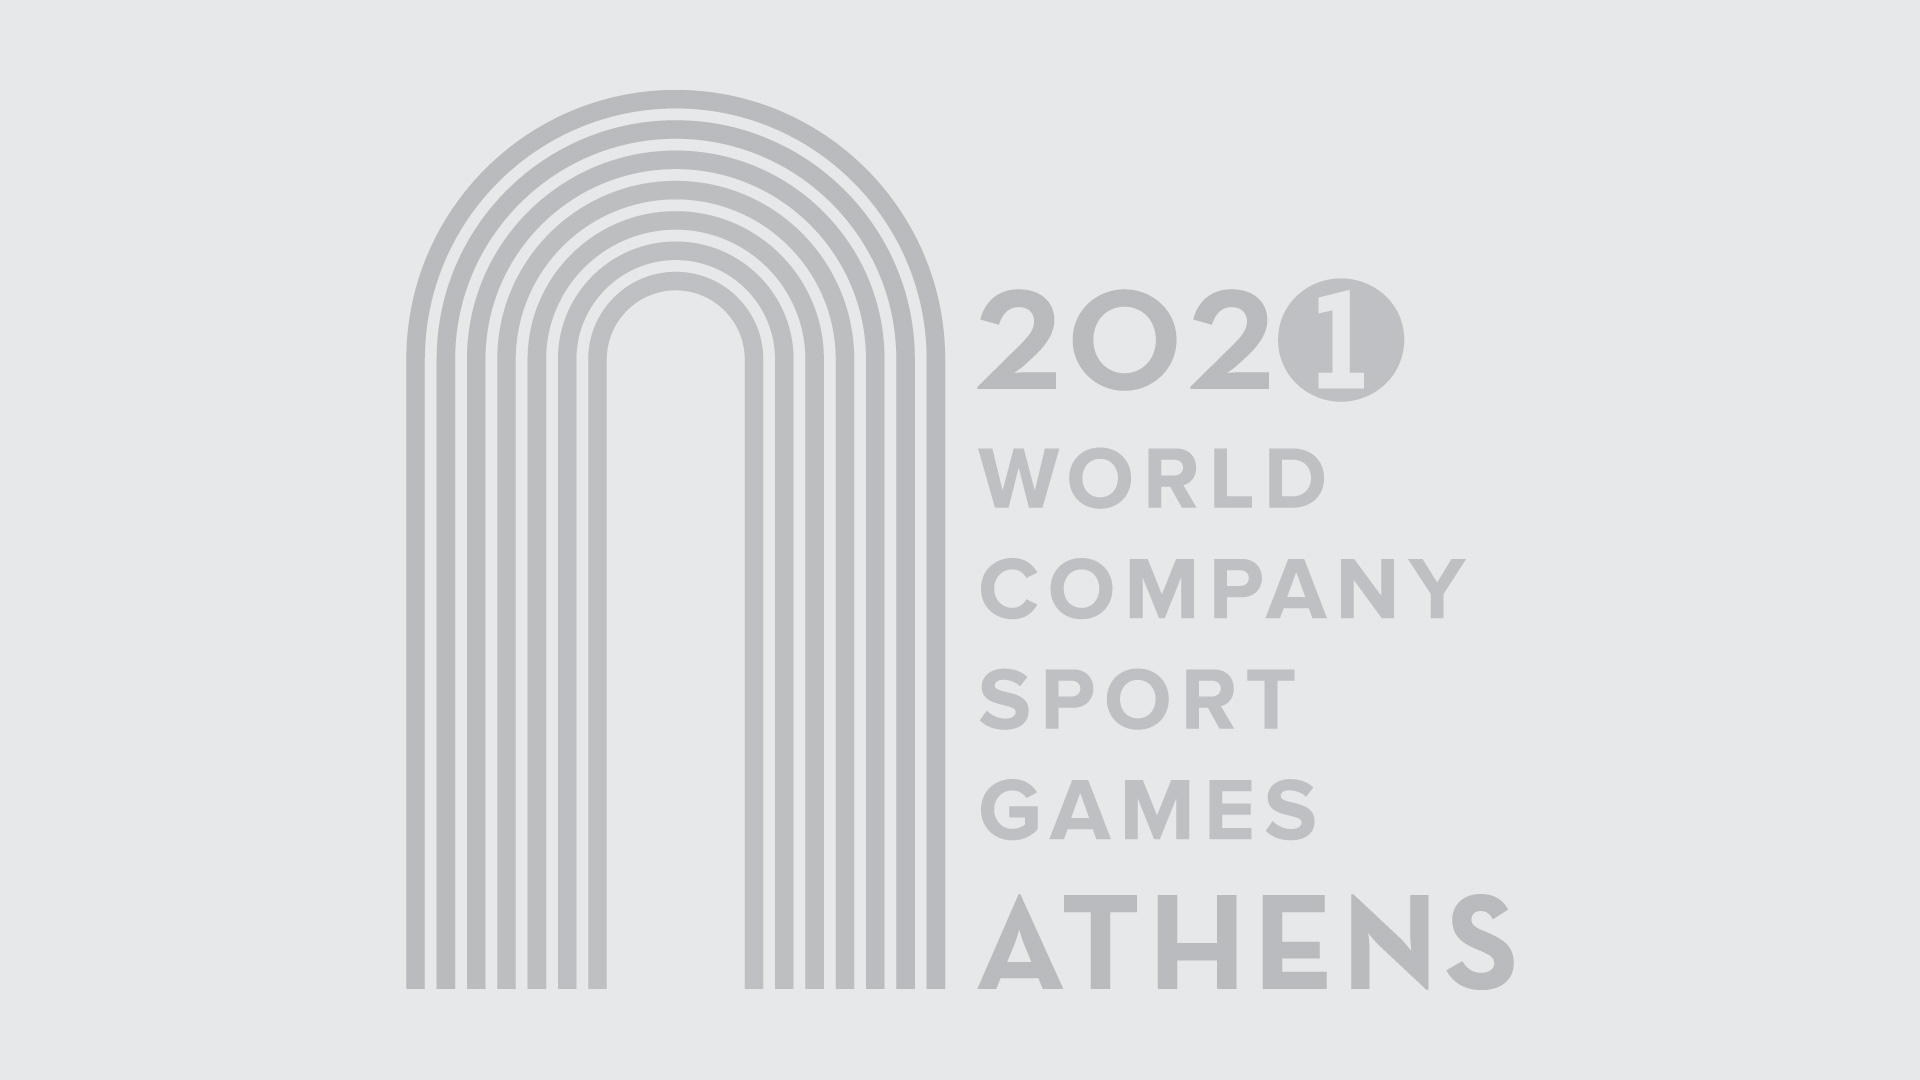 https://www.athens2020.org/sites/default/files/revslider/image/logo_bw_slider.jpg